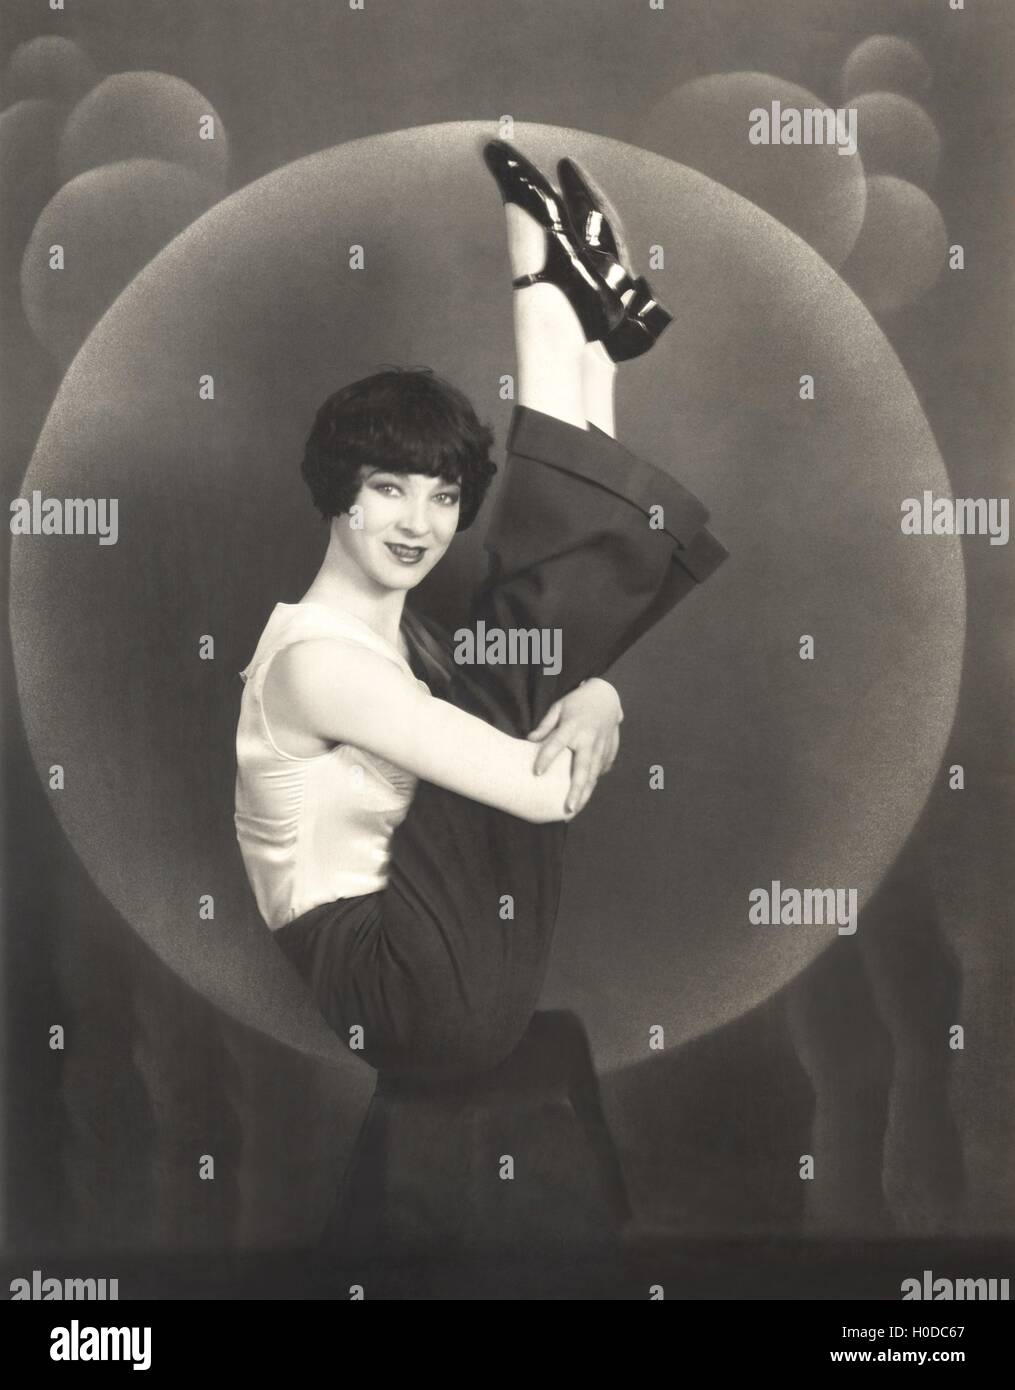 Woman holding her legs up in the air, 1930s - Stock Image